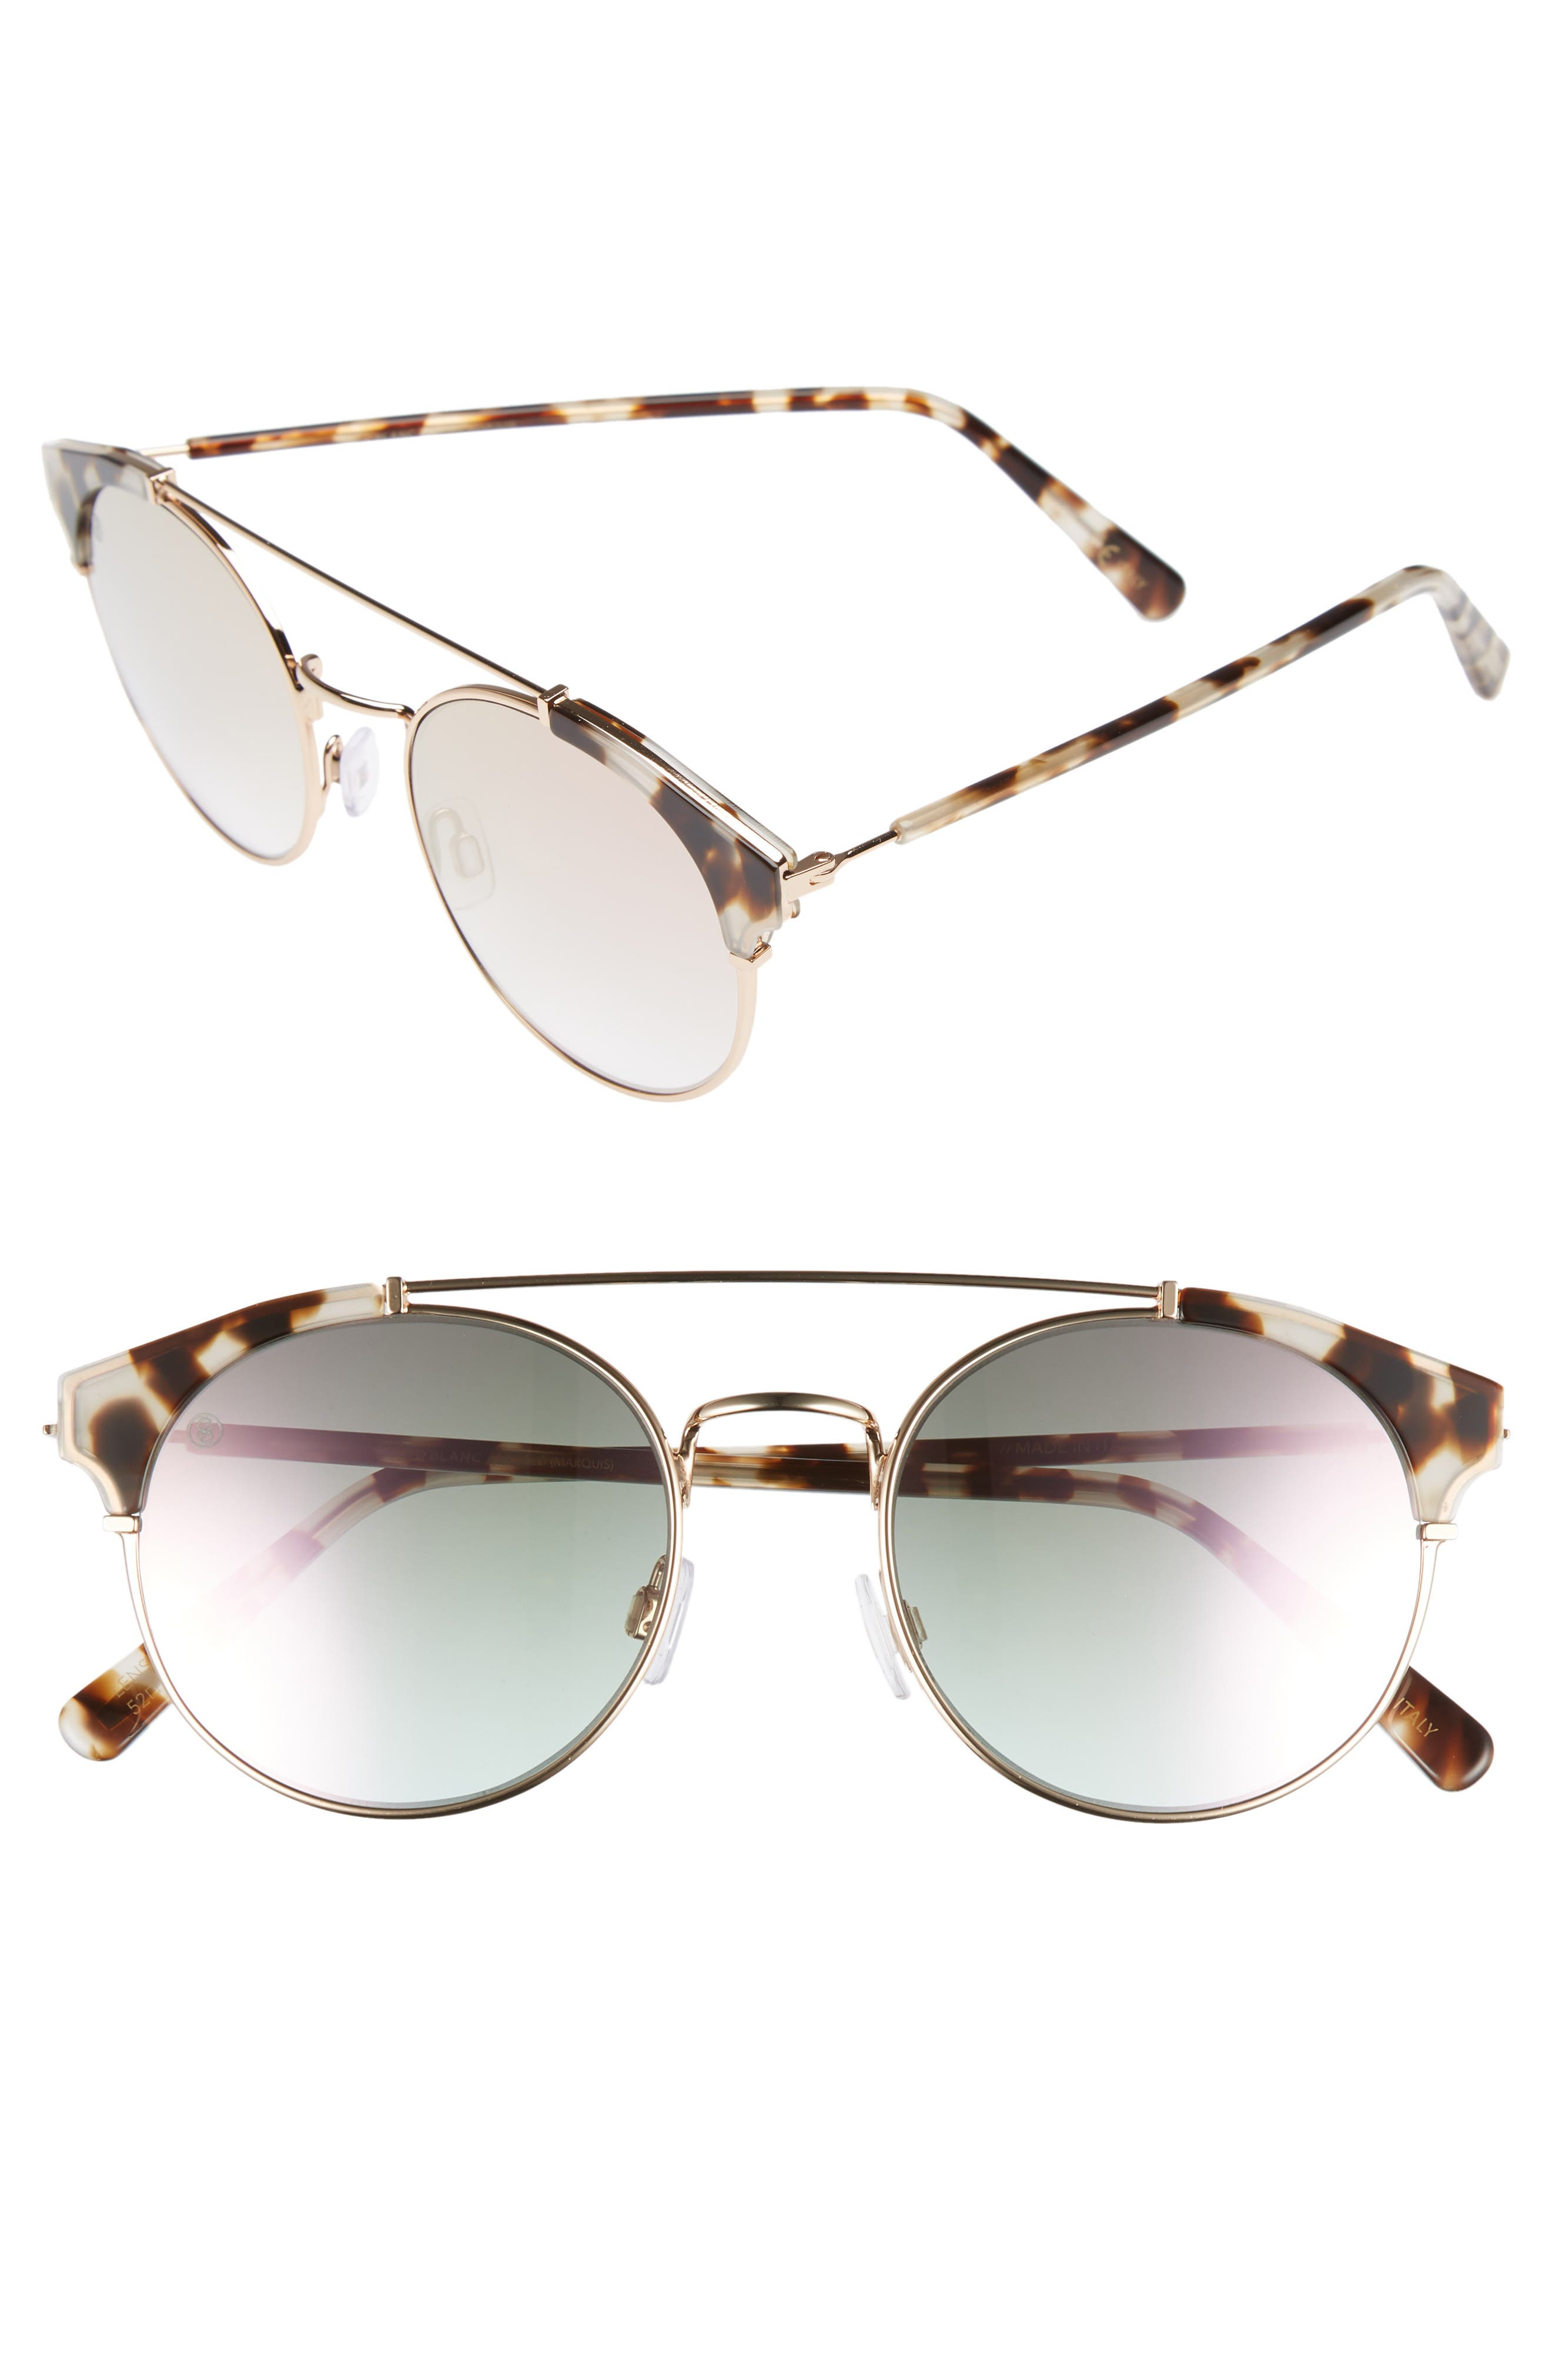 D'BLANC x Amuse Society Dosed Marquis 52mm Gradient Round Aviator Sunglasses,                         Main,                         color, Snow Leopard/ Rose Flash